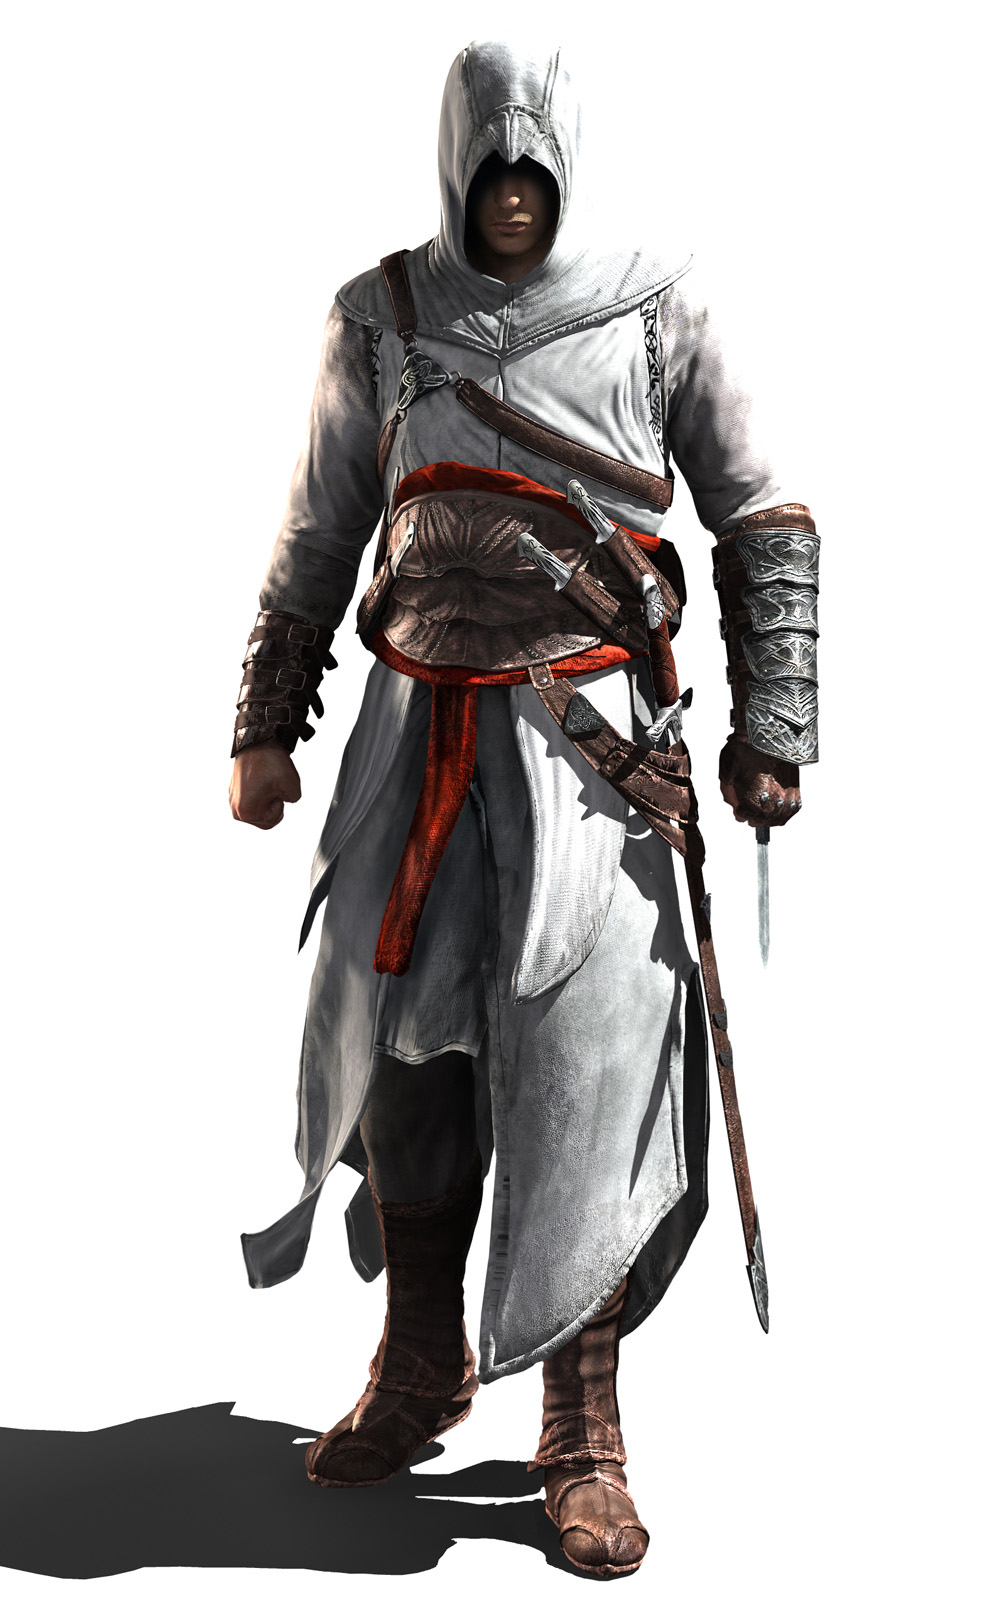 http://assassinscreedtngns.narod.ru/renders/artacAltair2acart.jpg